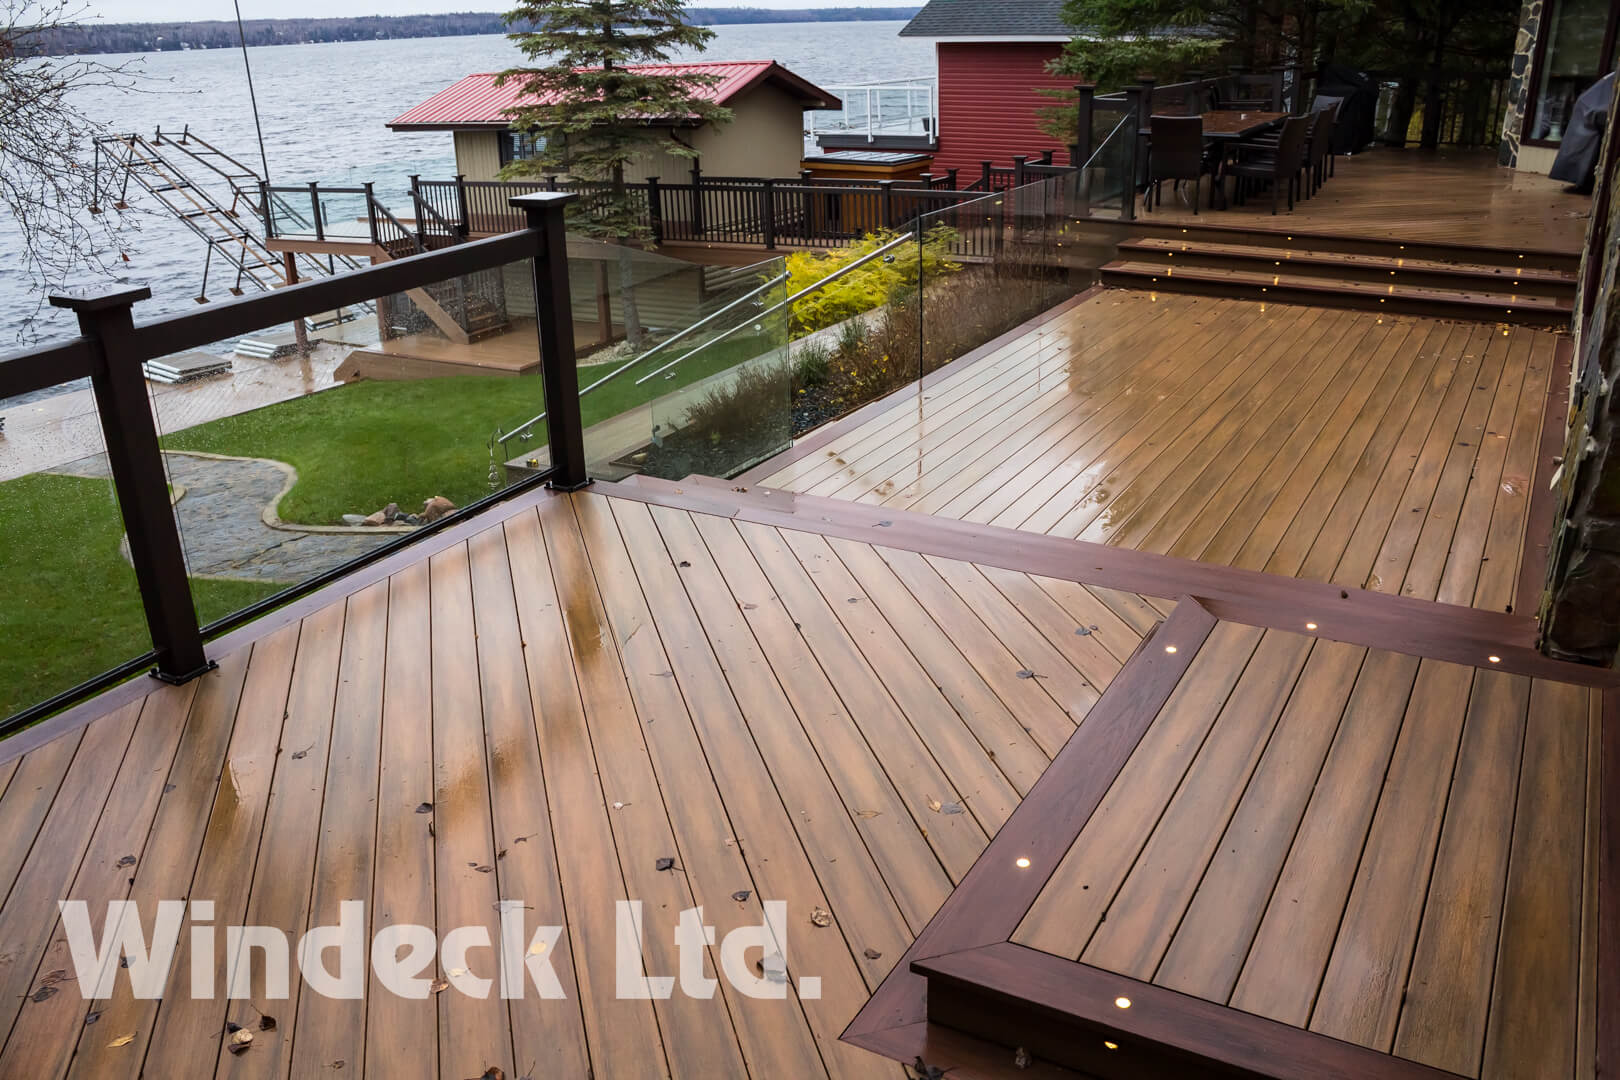 Outdoor Cottage living - Windeck Ltd. - Deck Builder Winnipeg, Manitoba